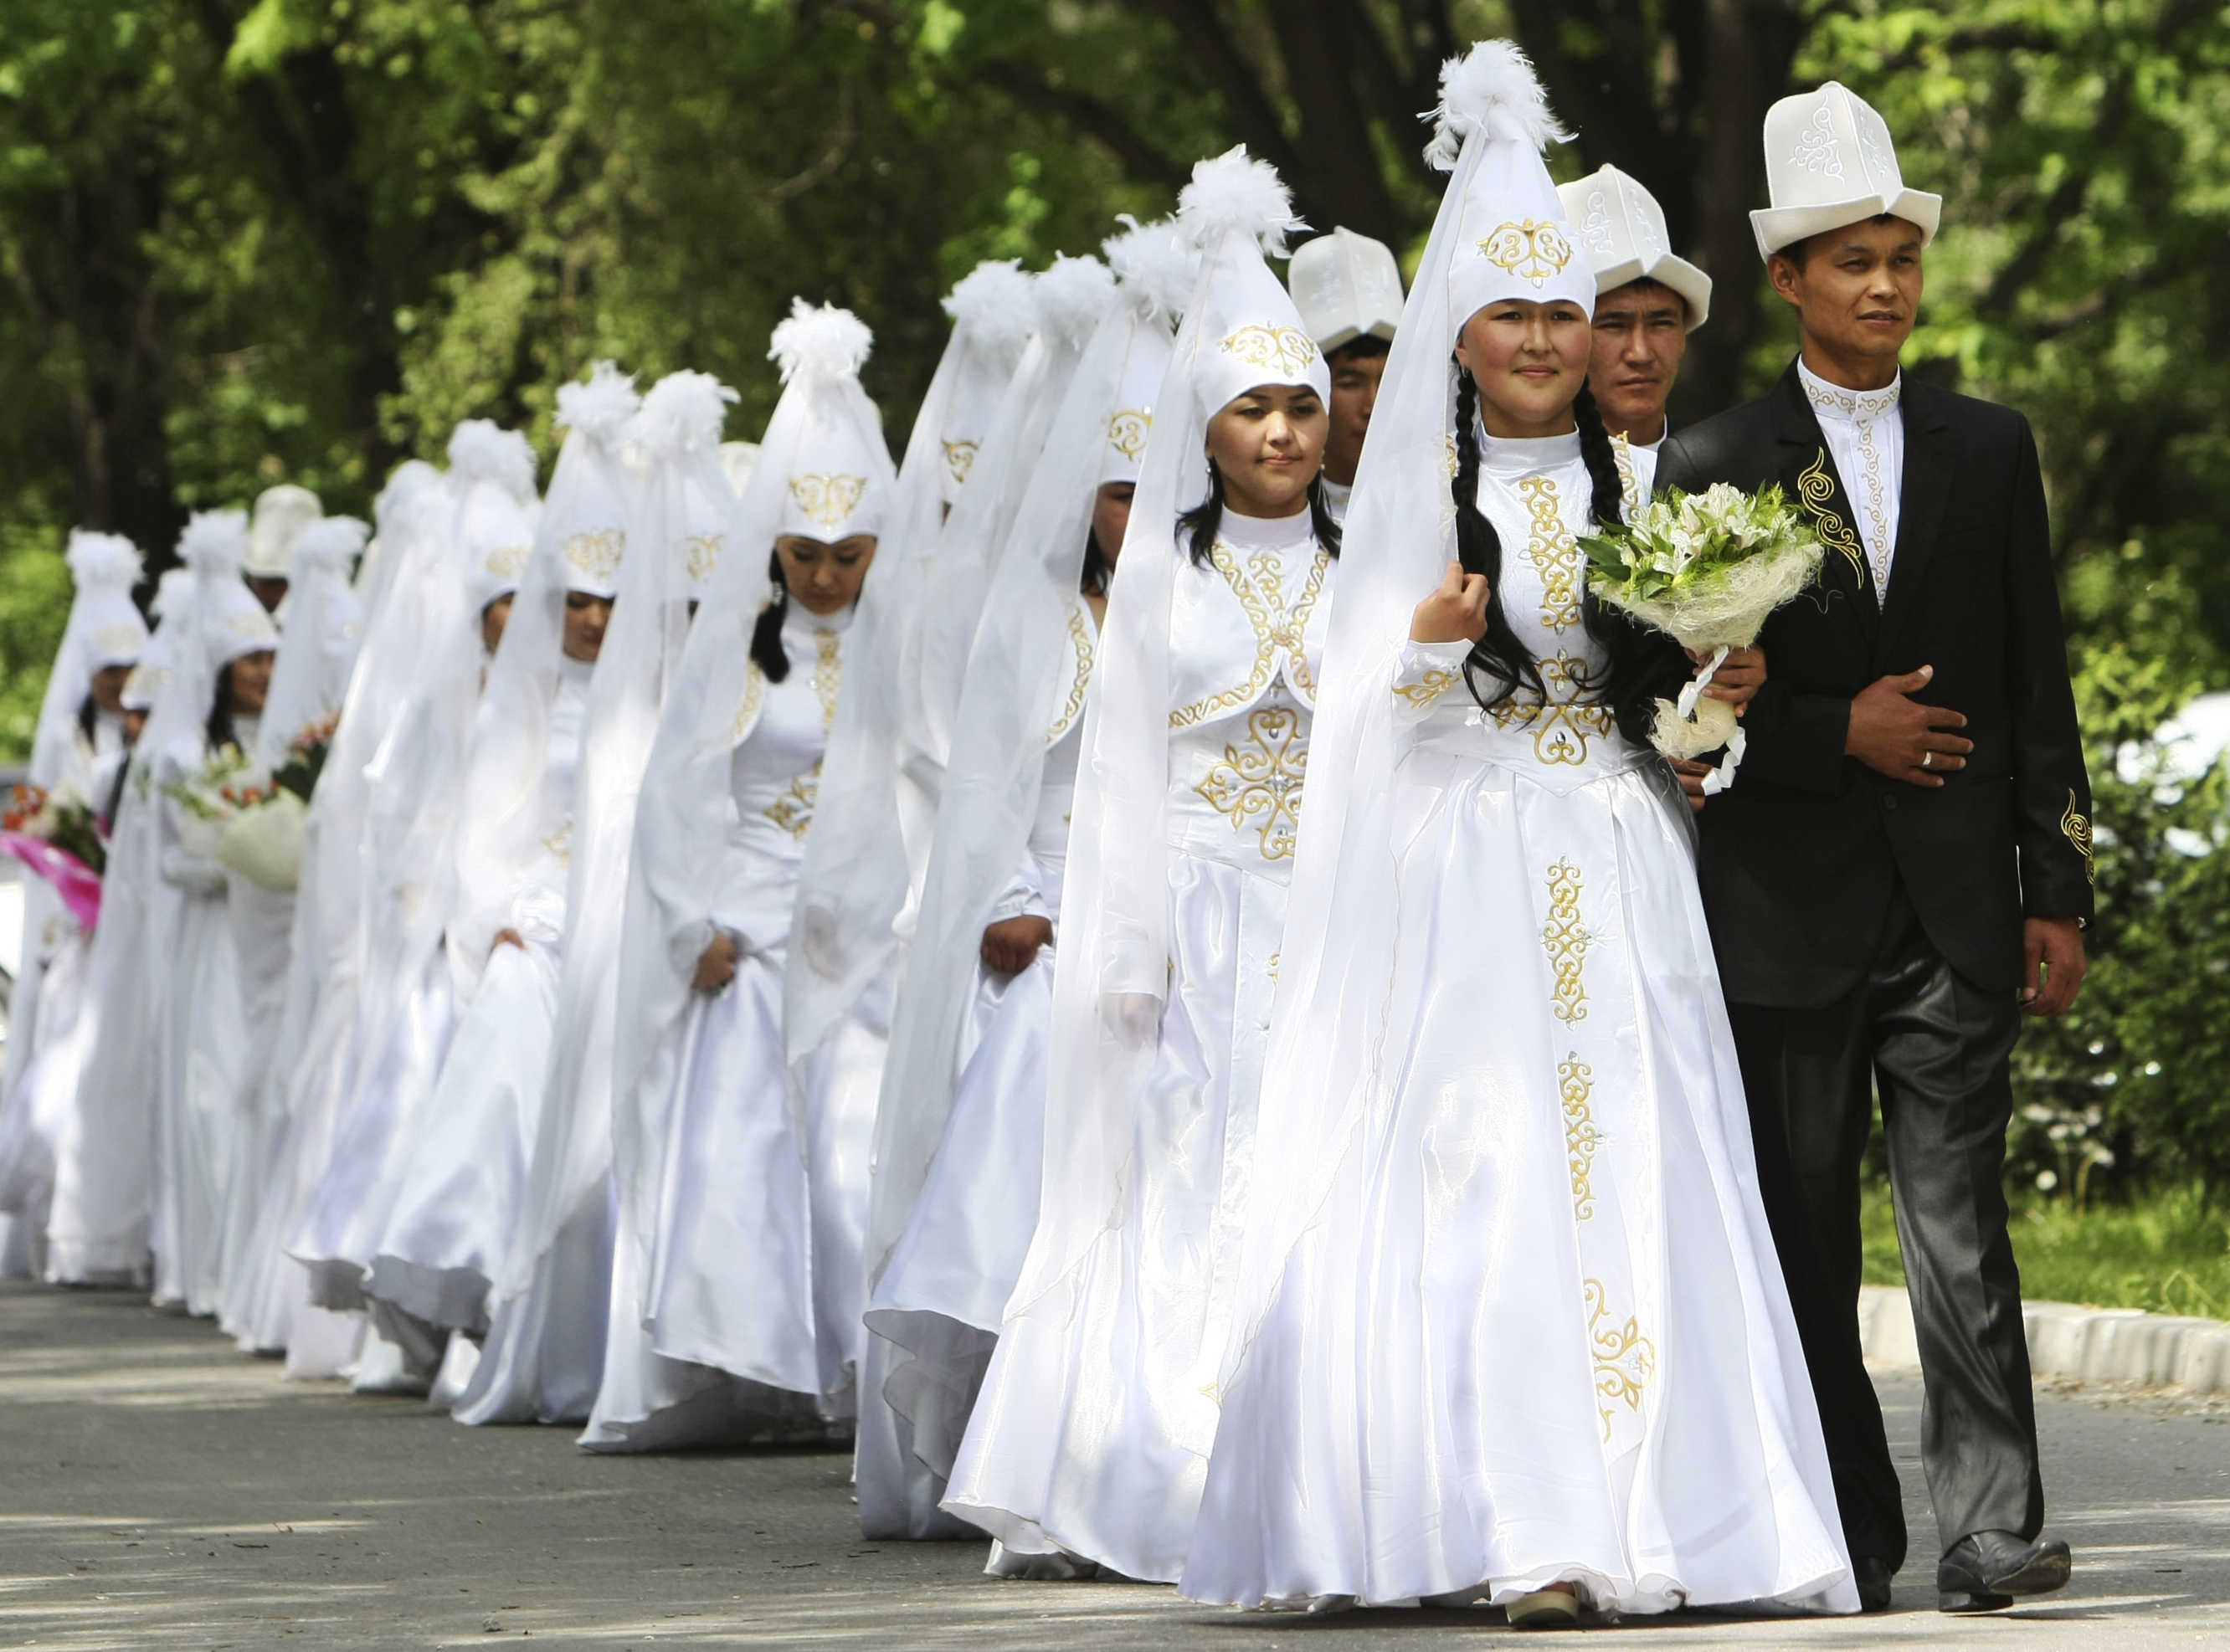 FILE - Brides and grooms leave after a mass wedding ceremony in the Kyrgyz capital of Bishkek, May 7, 2011. The wedding, held for 20 couples who could not afford their own celebrations, was sponsored by the Kyrgyz government.